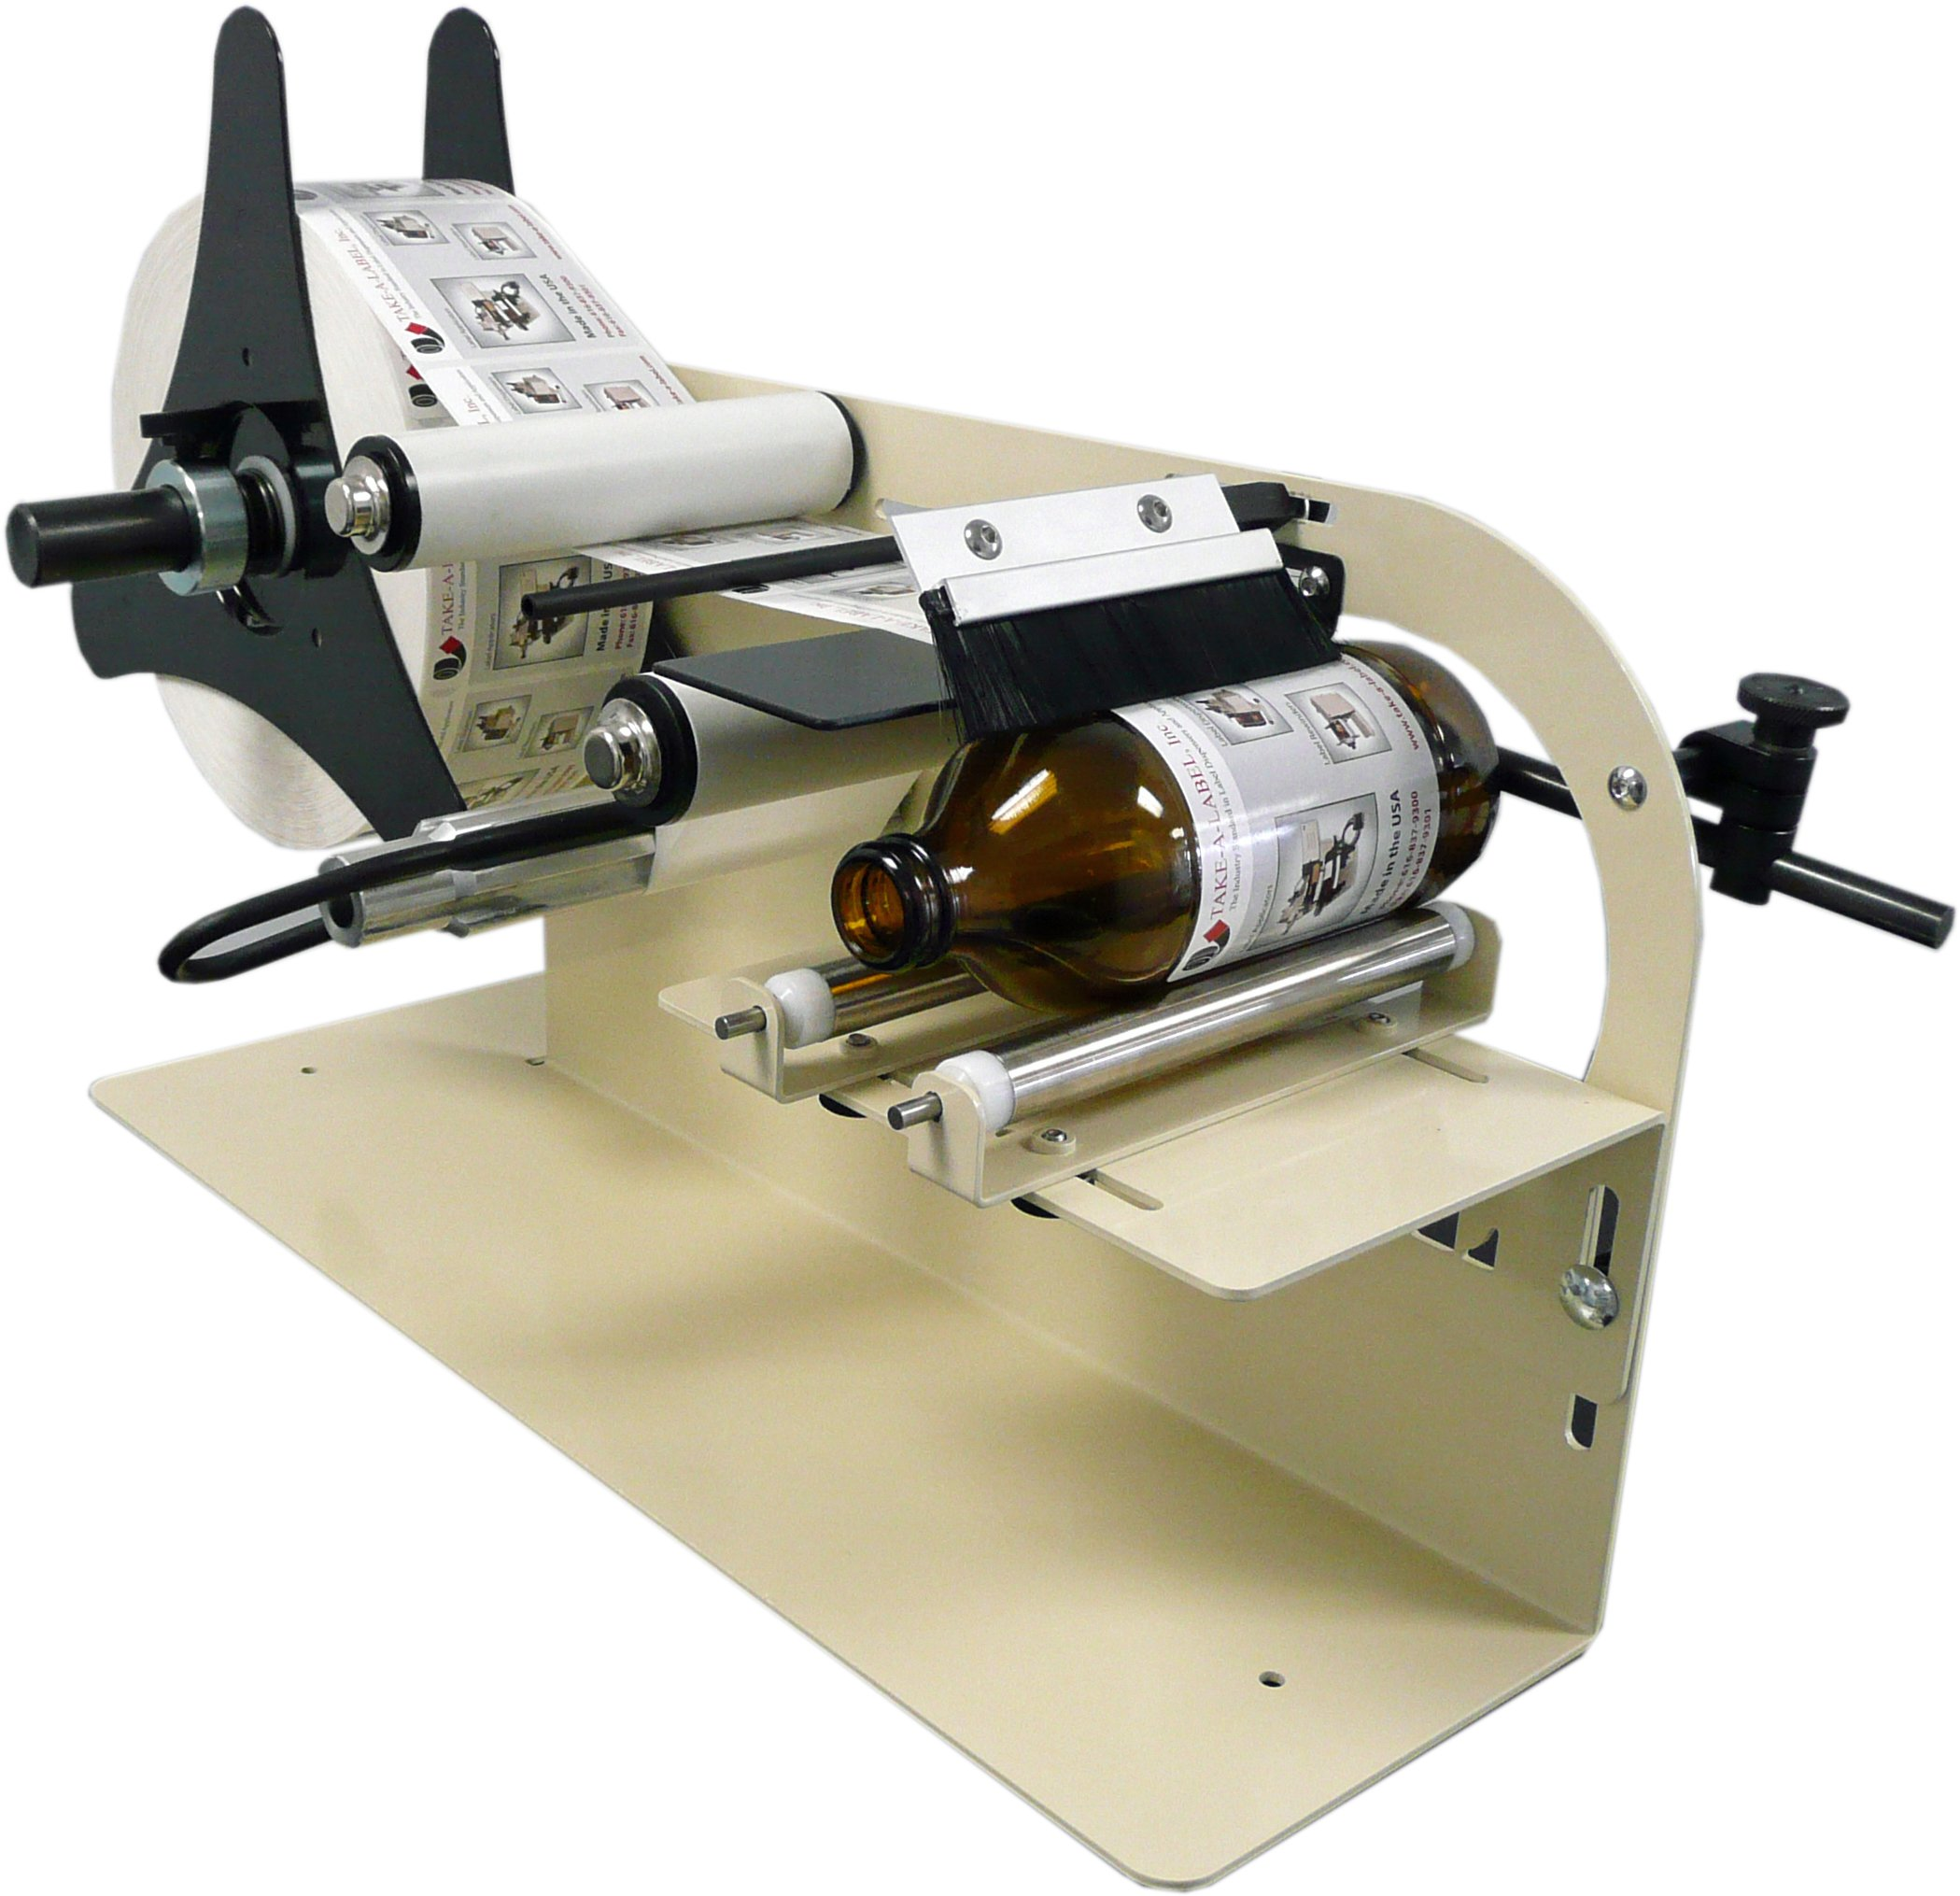 Take-a-Label TAL-1100MR Manual Round Product Label Applicator